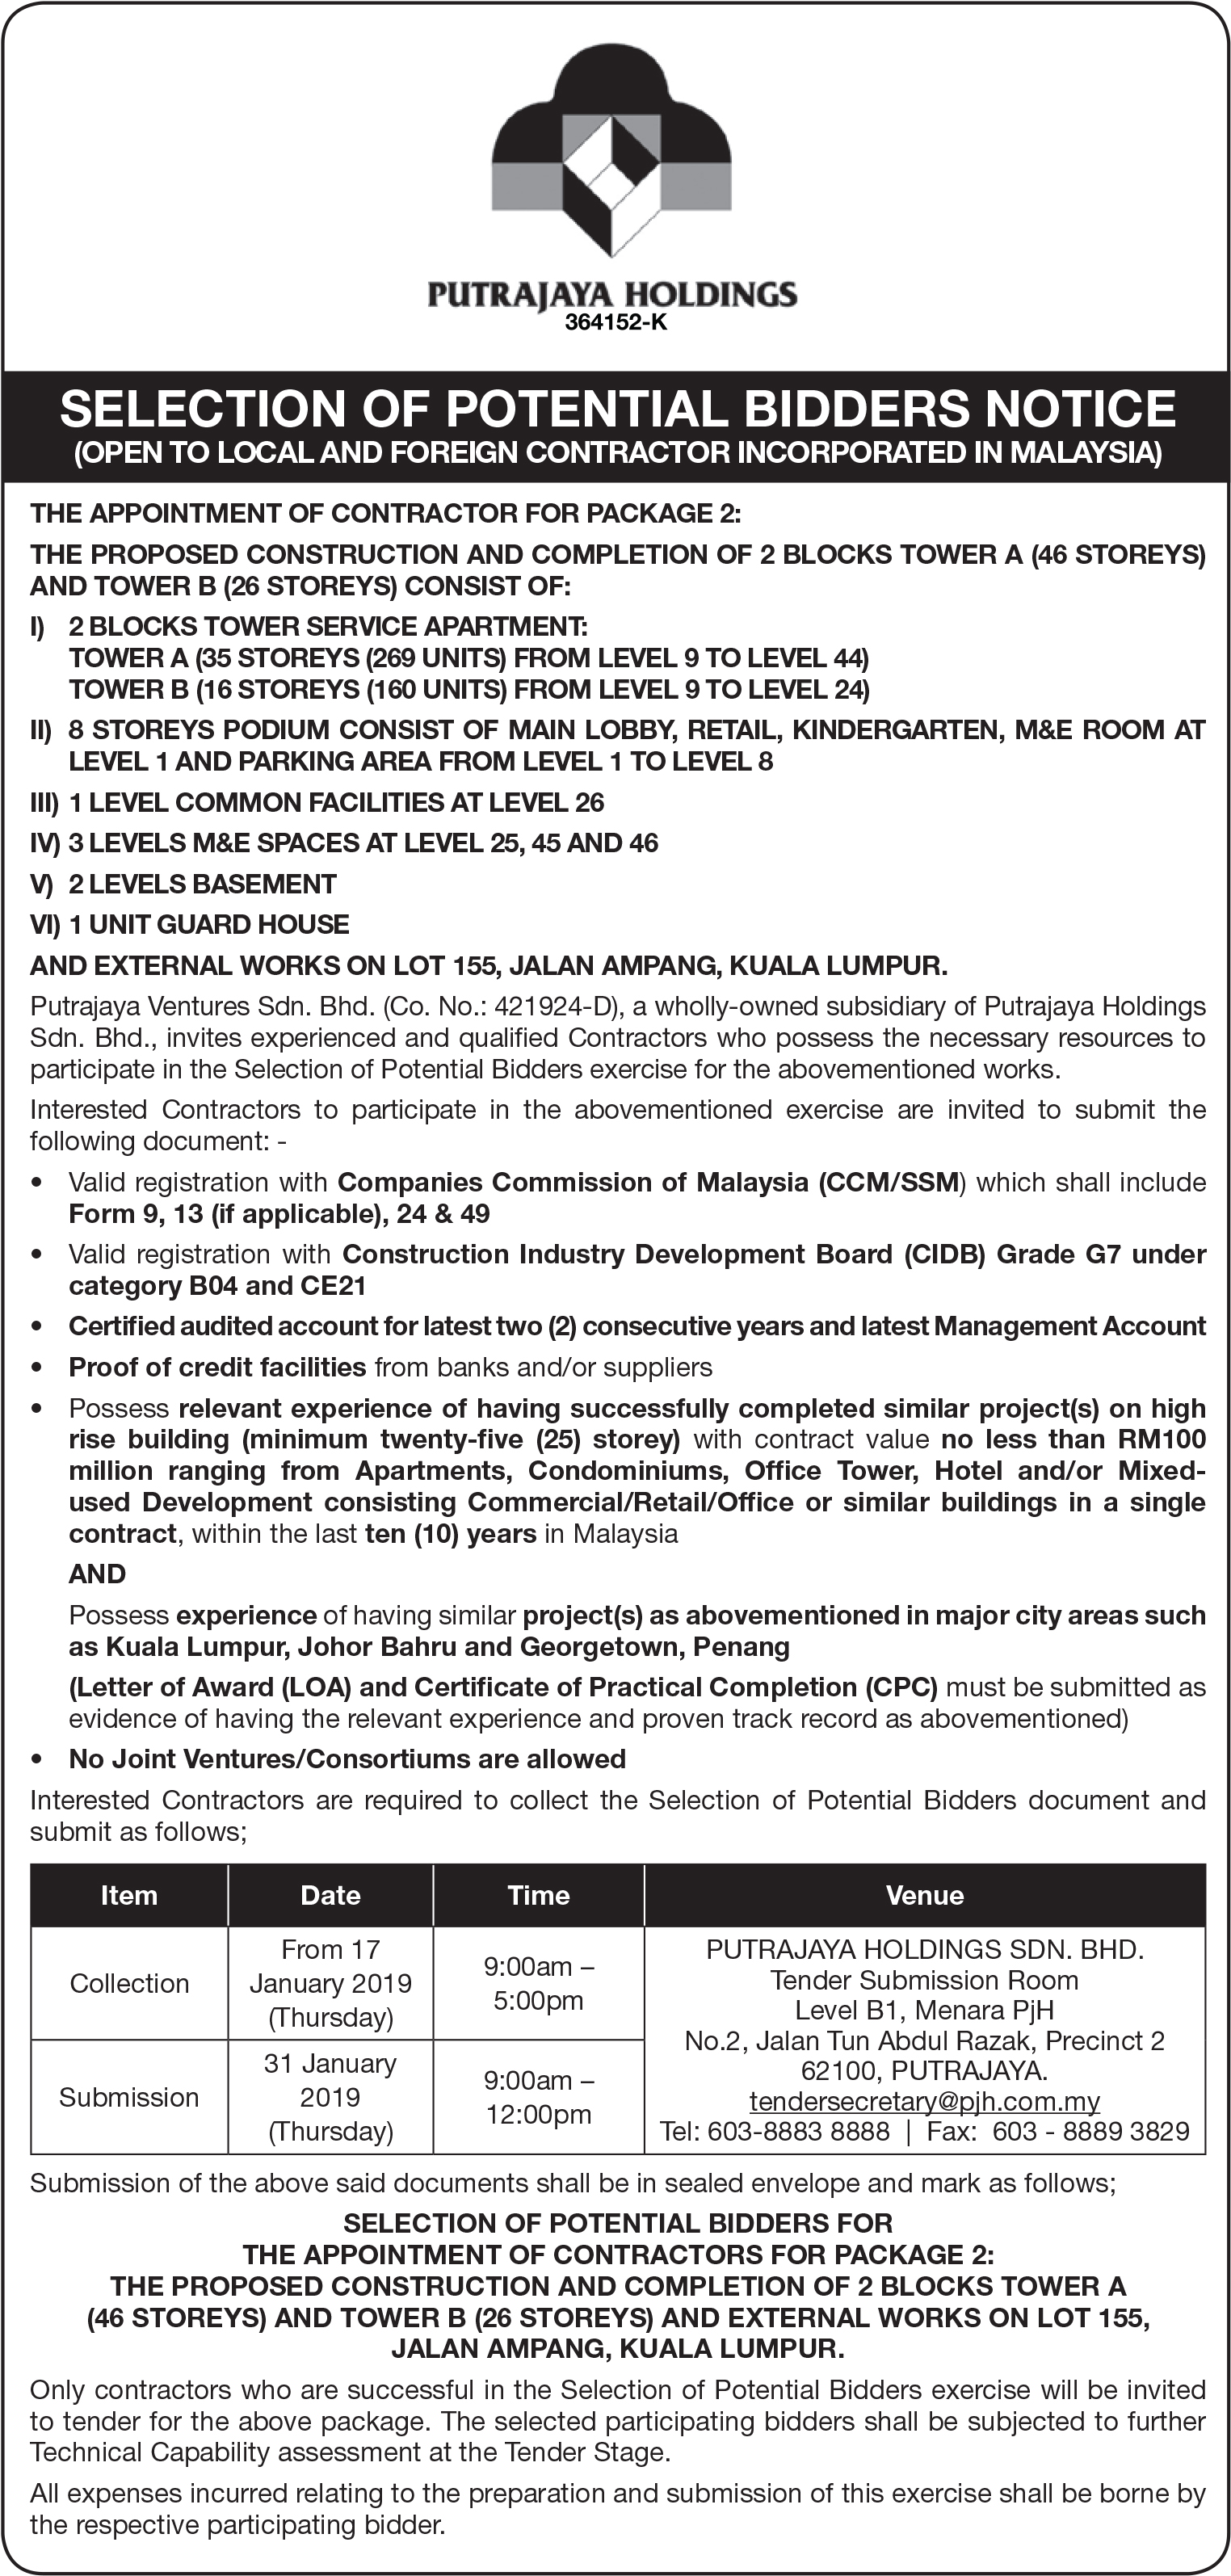 Tender Notice The proposed construction and completion of 2